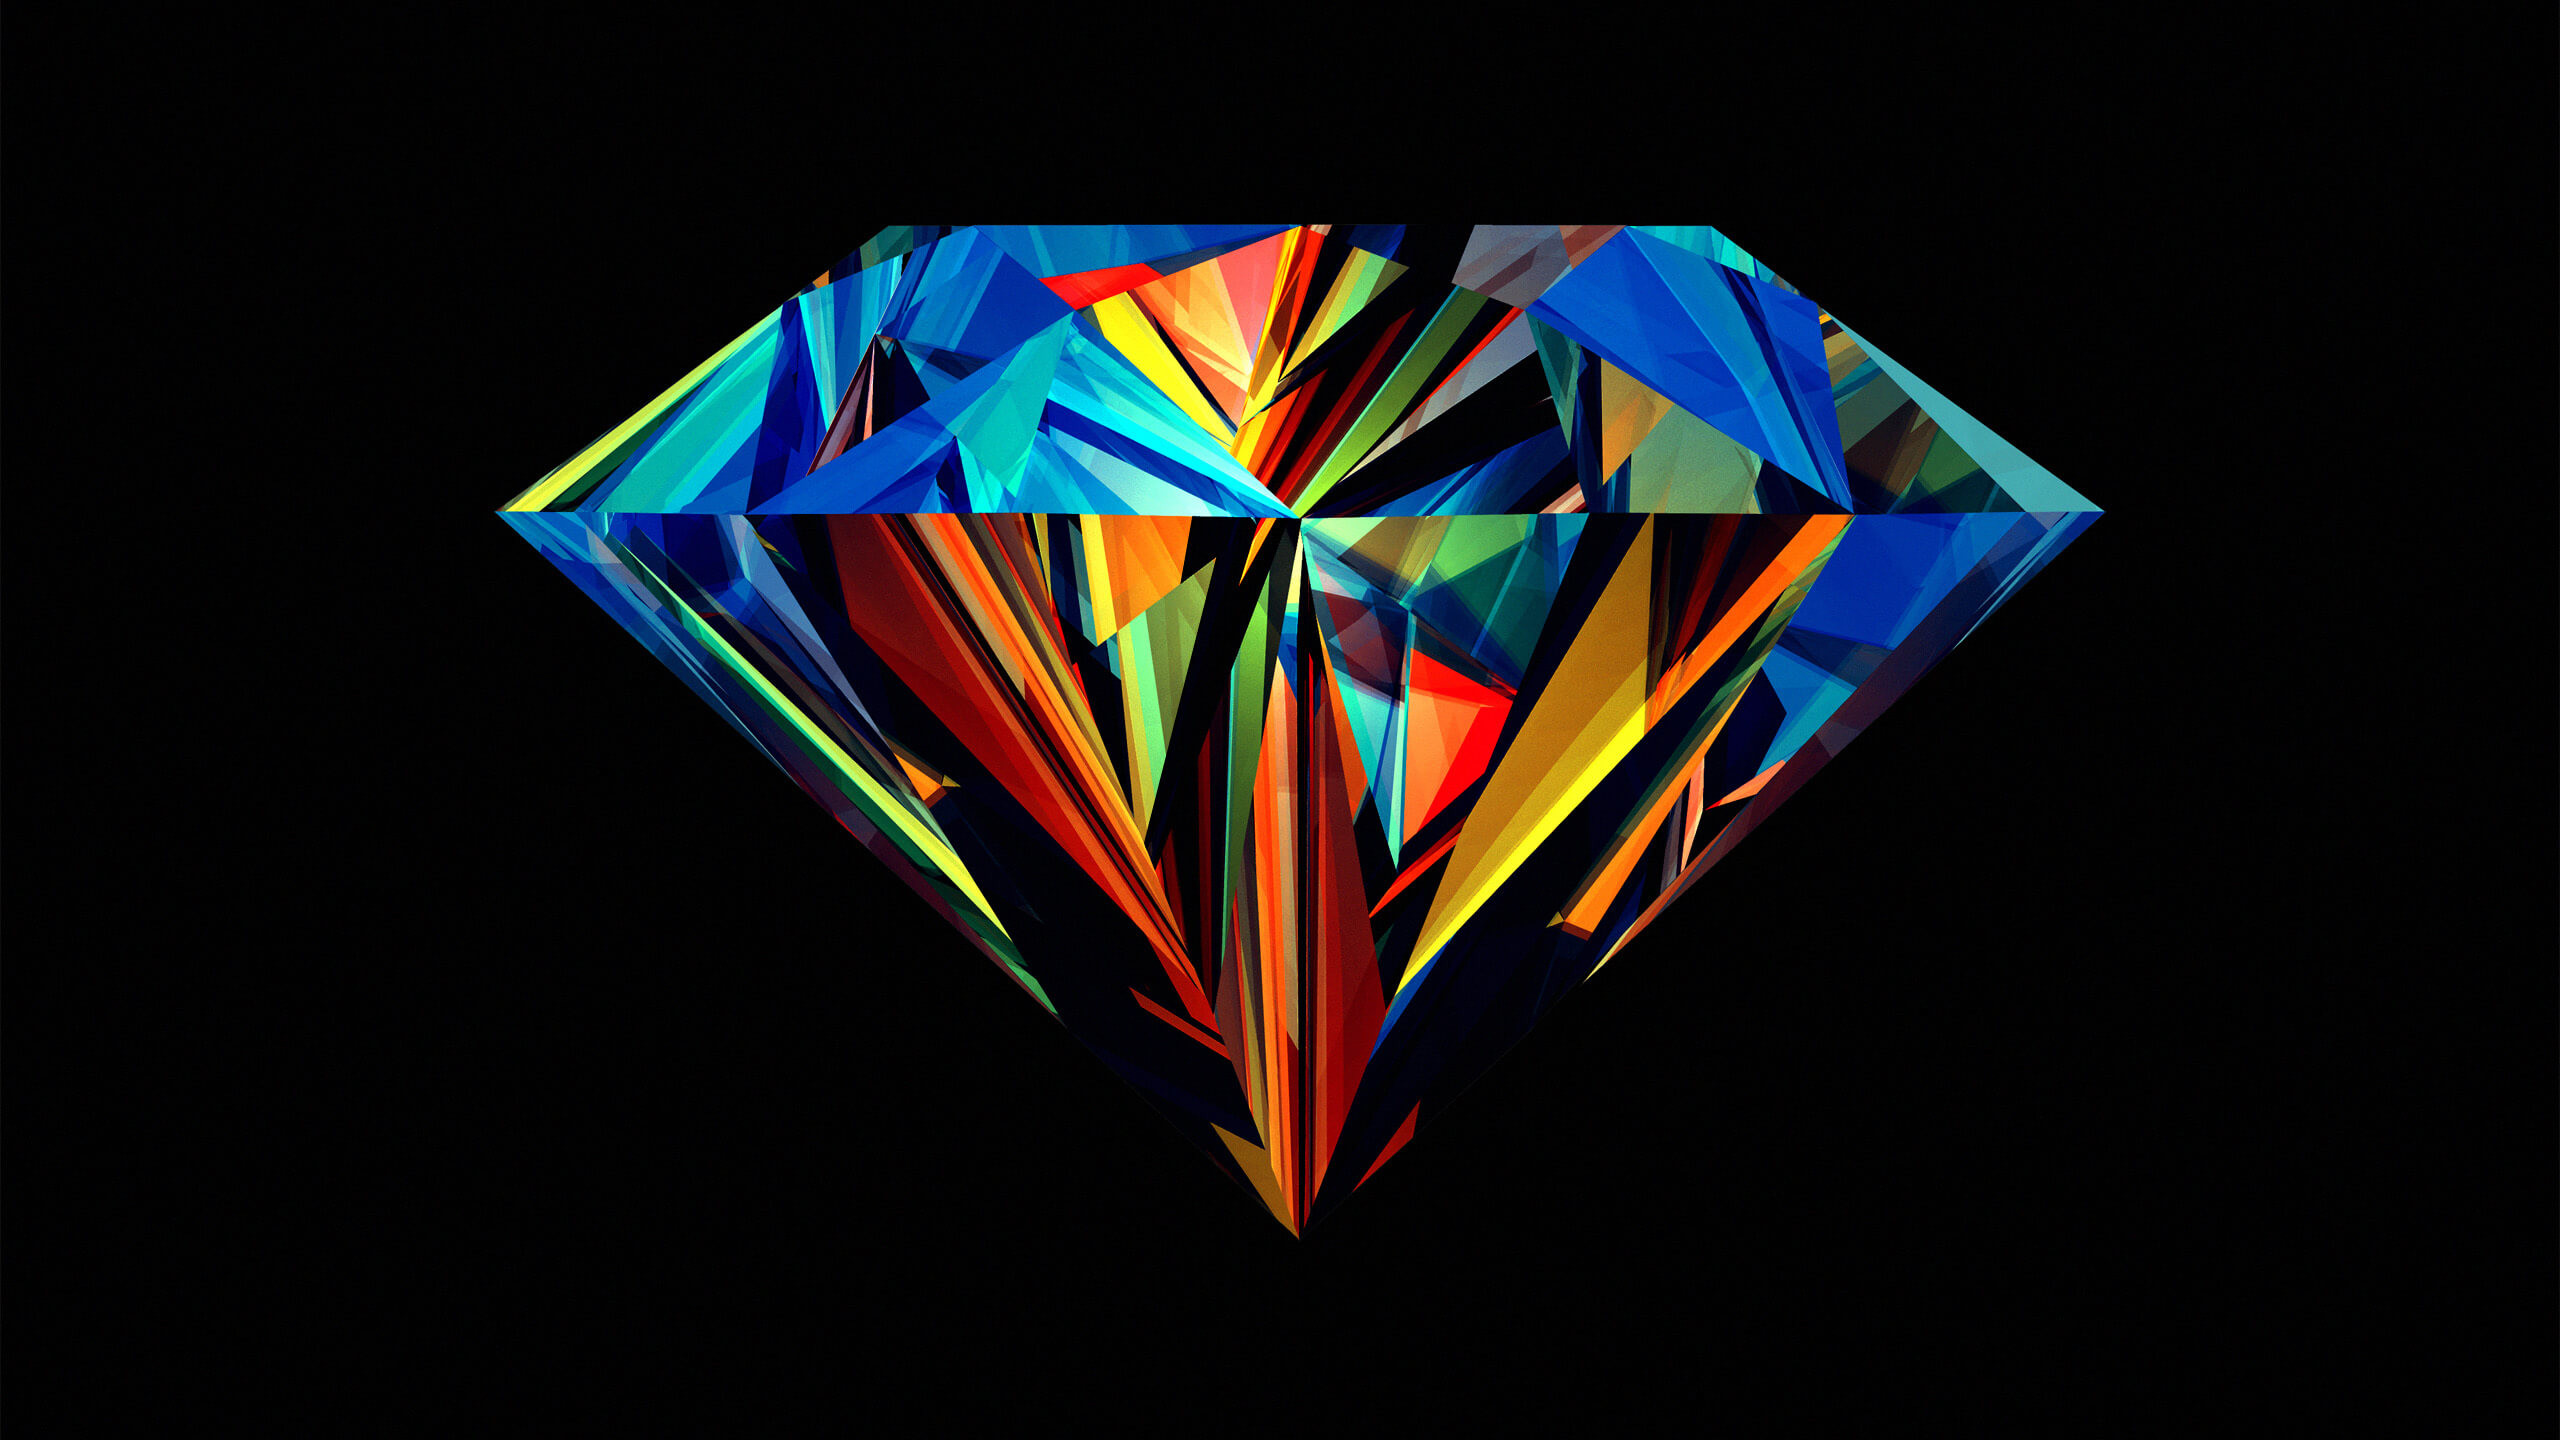 Colorful Diamond HD wallpaper for Youtube Channel Art – HDwallpapers .